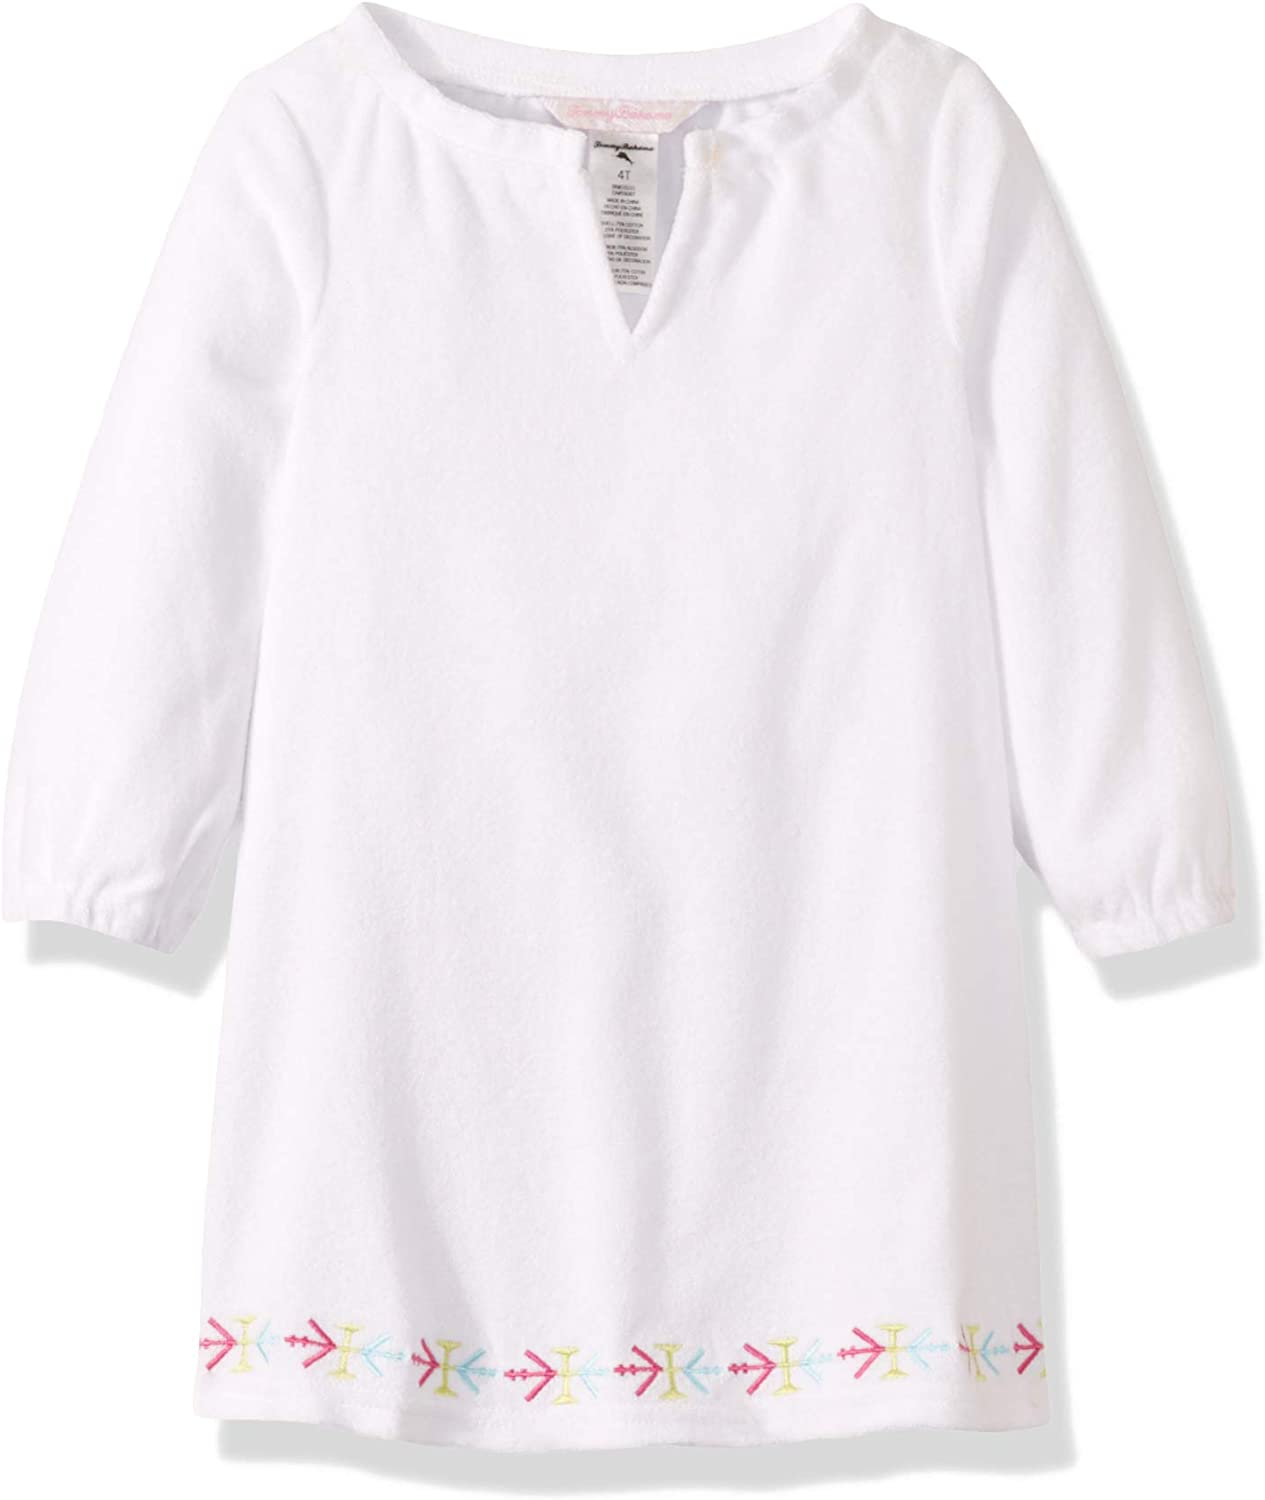 Tommy Bahama Girls Baby Terry Cloth Swimsuit Coverup